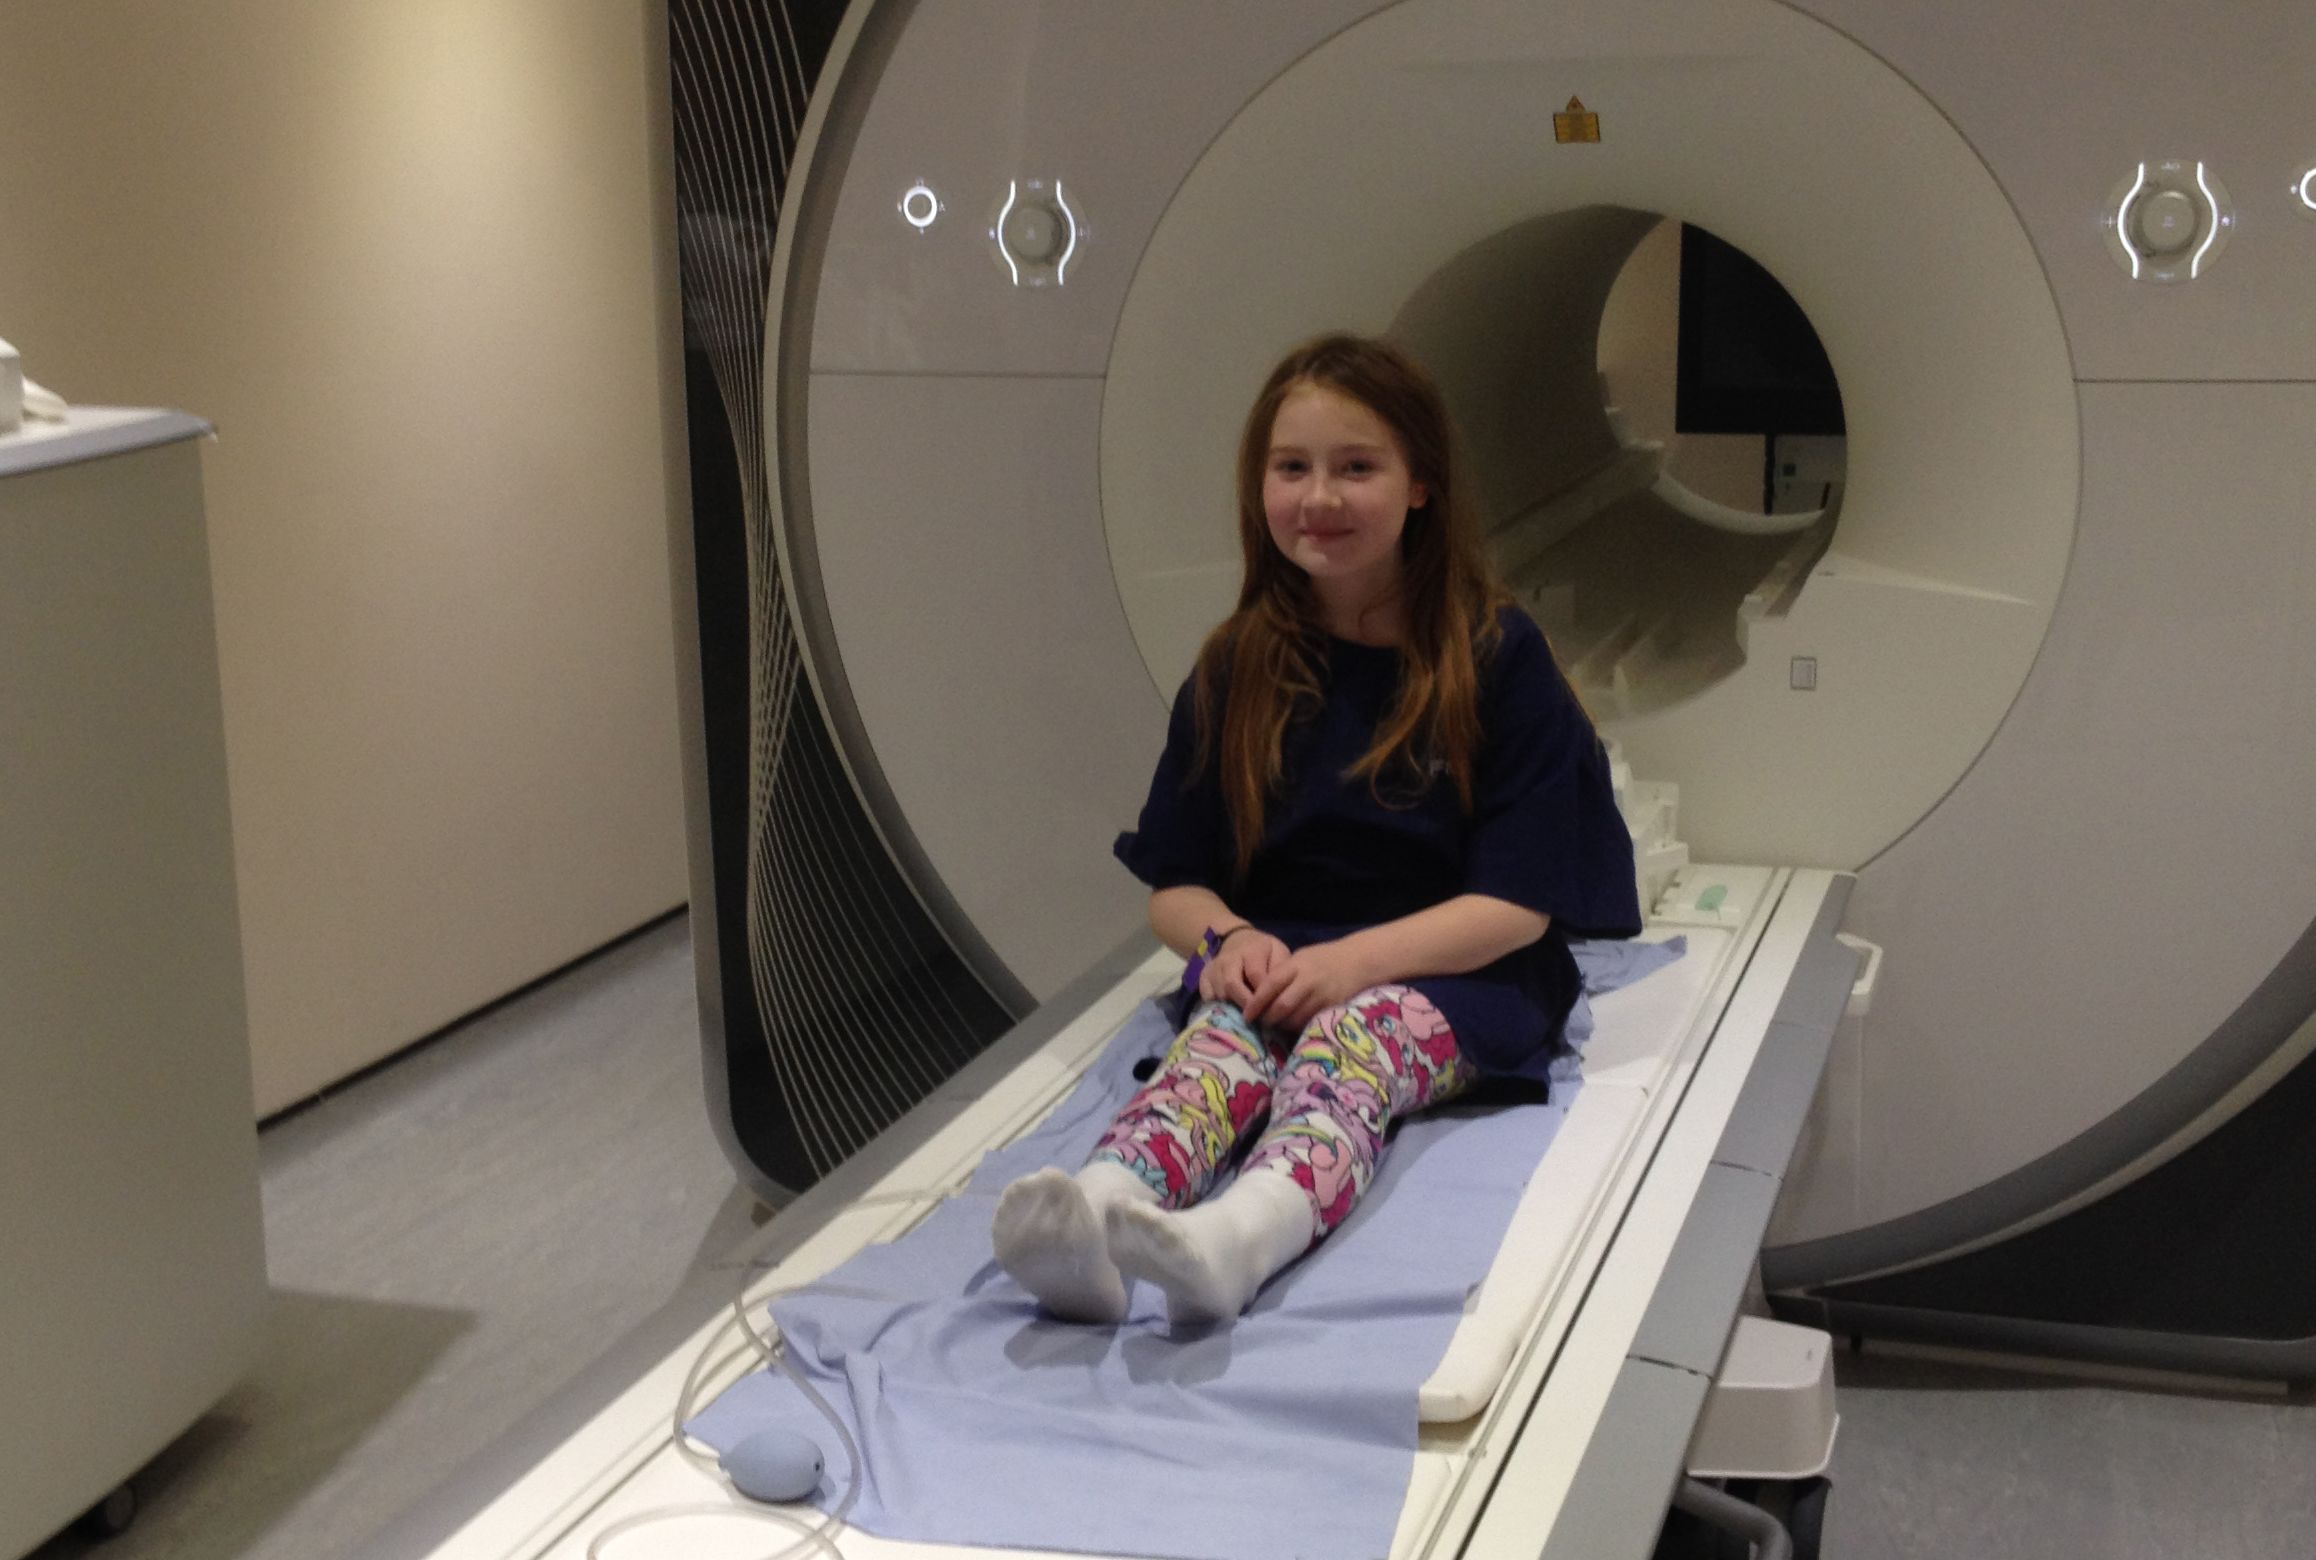 Child in front of an MRI scanner